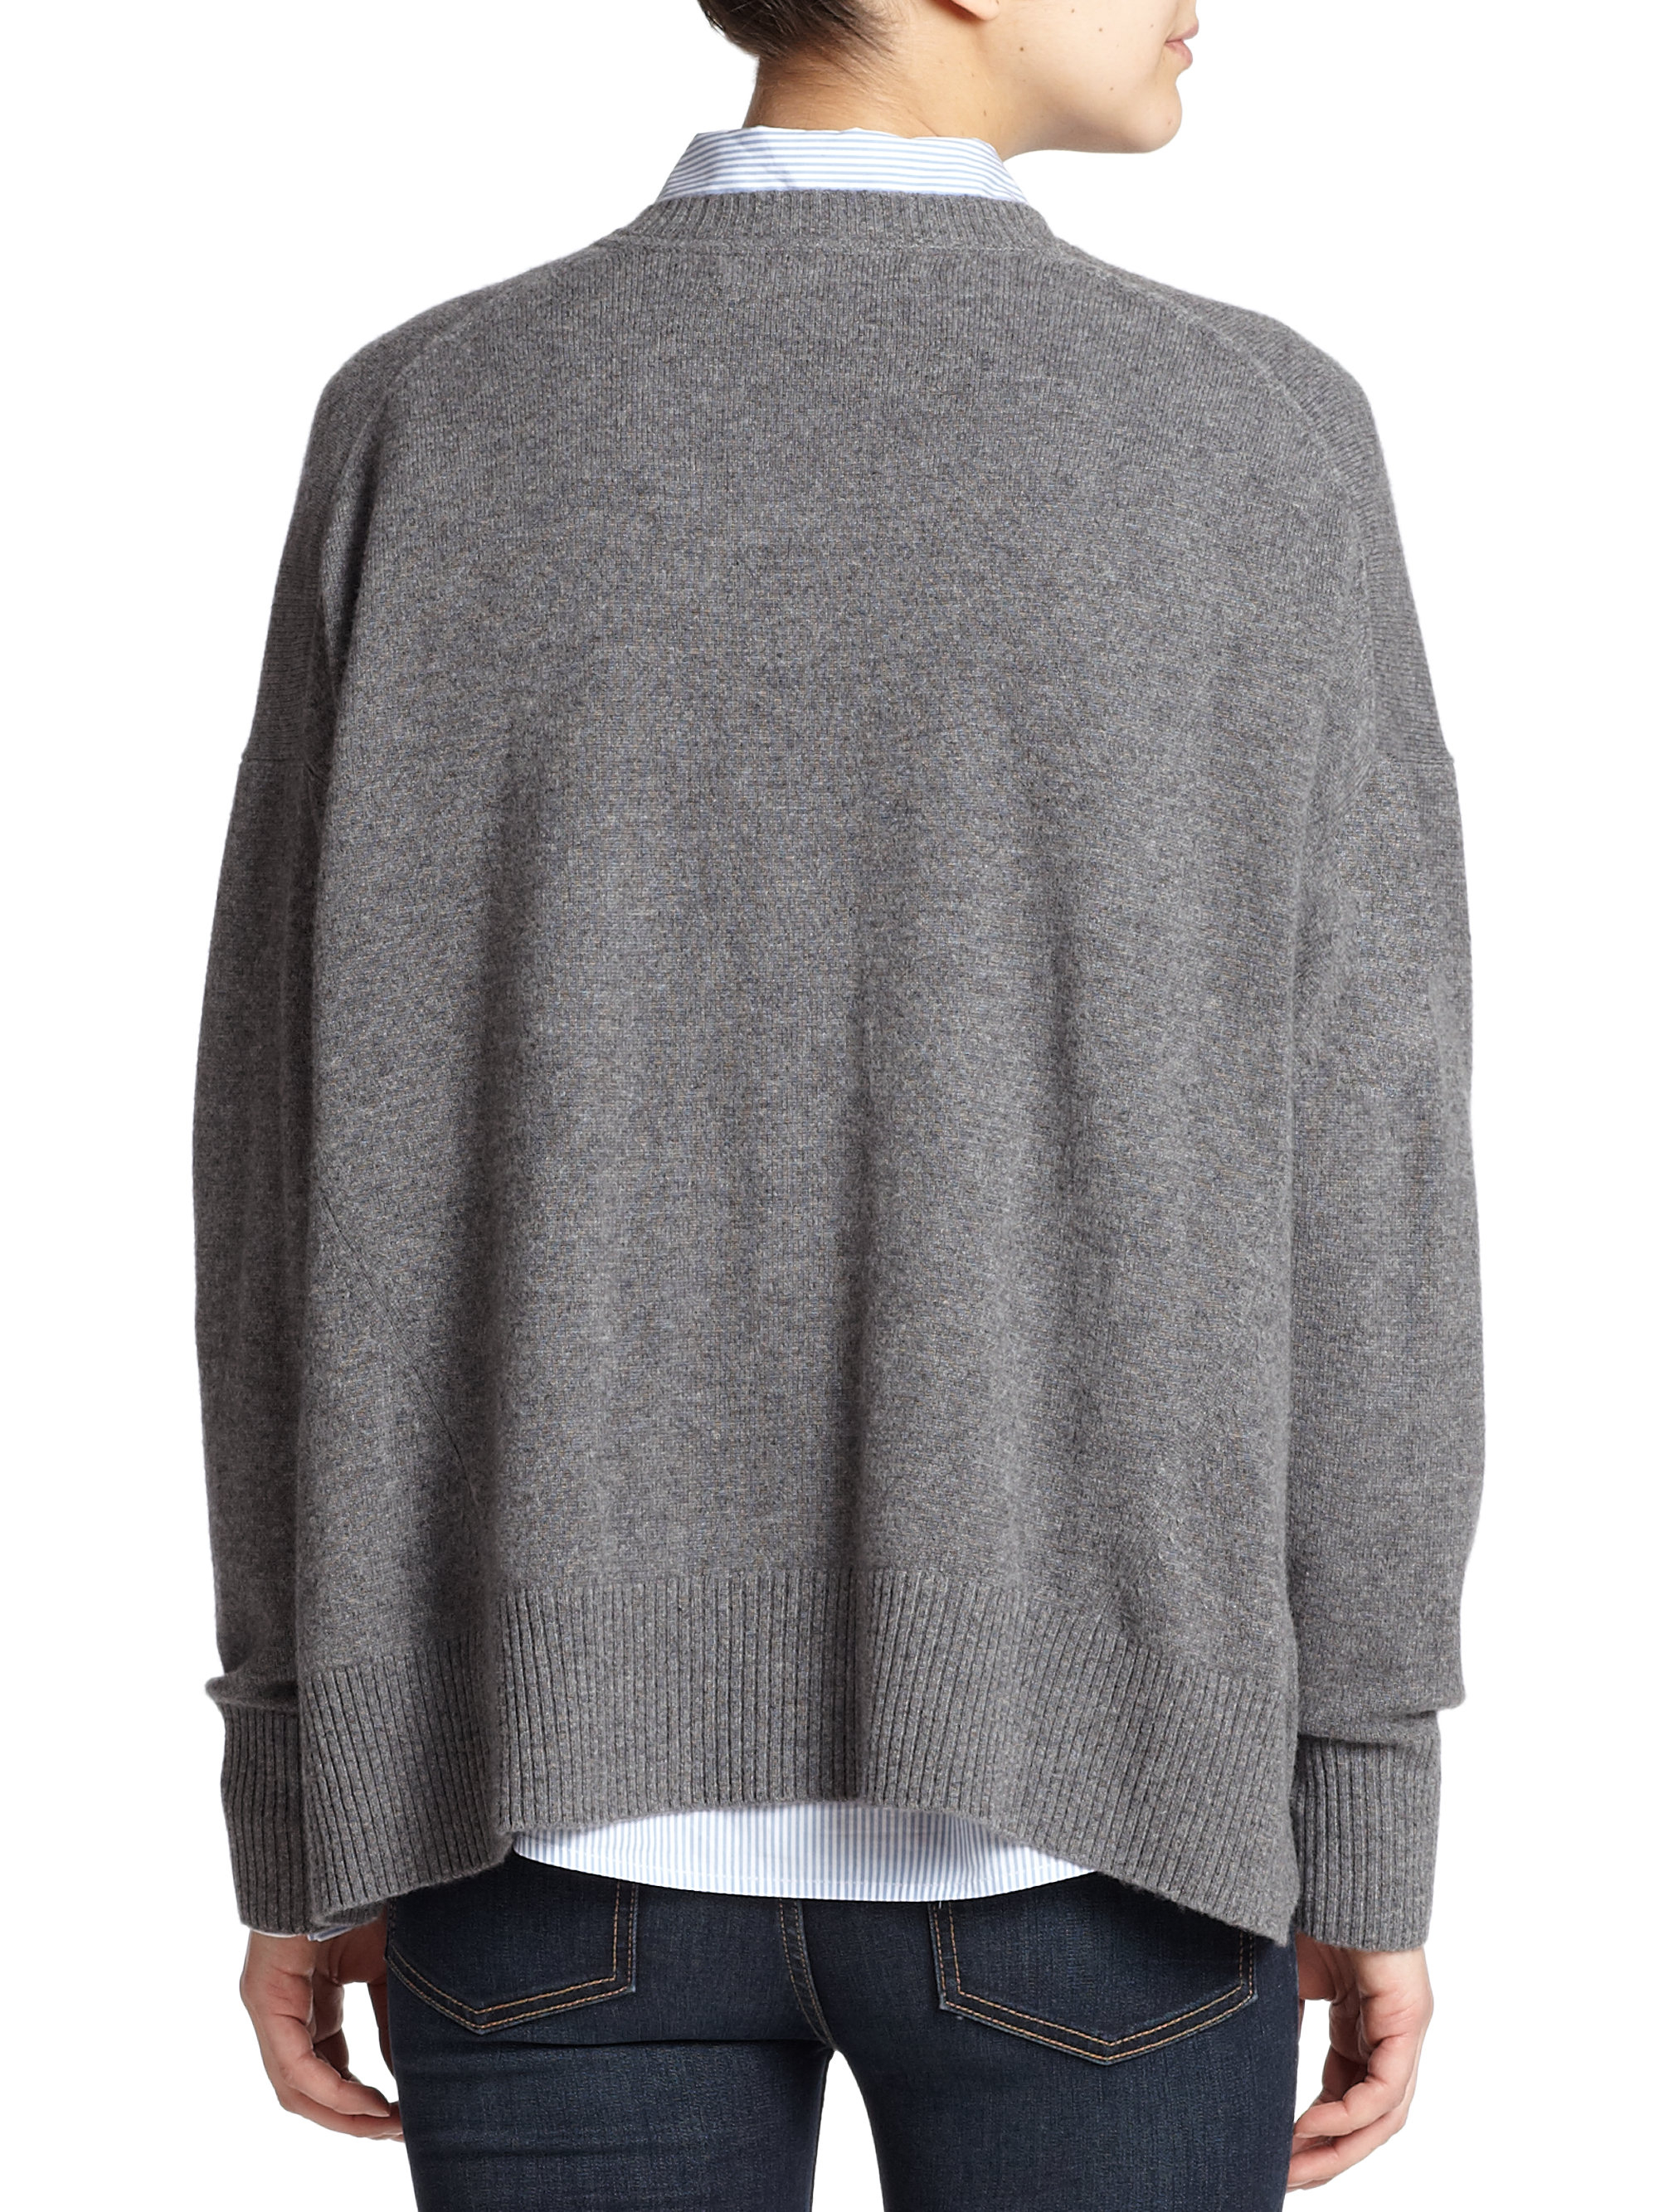 marc by marc jacobs cropped cashmere sweater in gray grey lyst. Black Bedroom Furniture Sets. Home Design Ideas